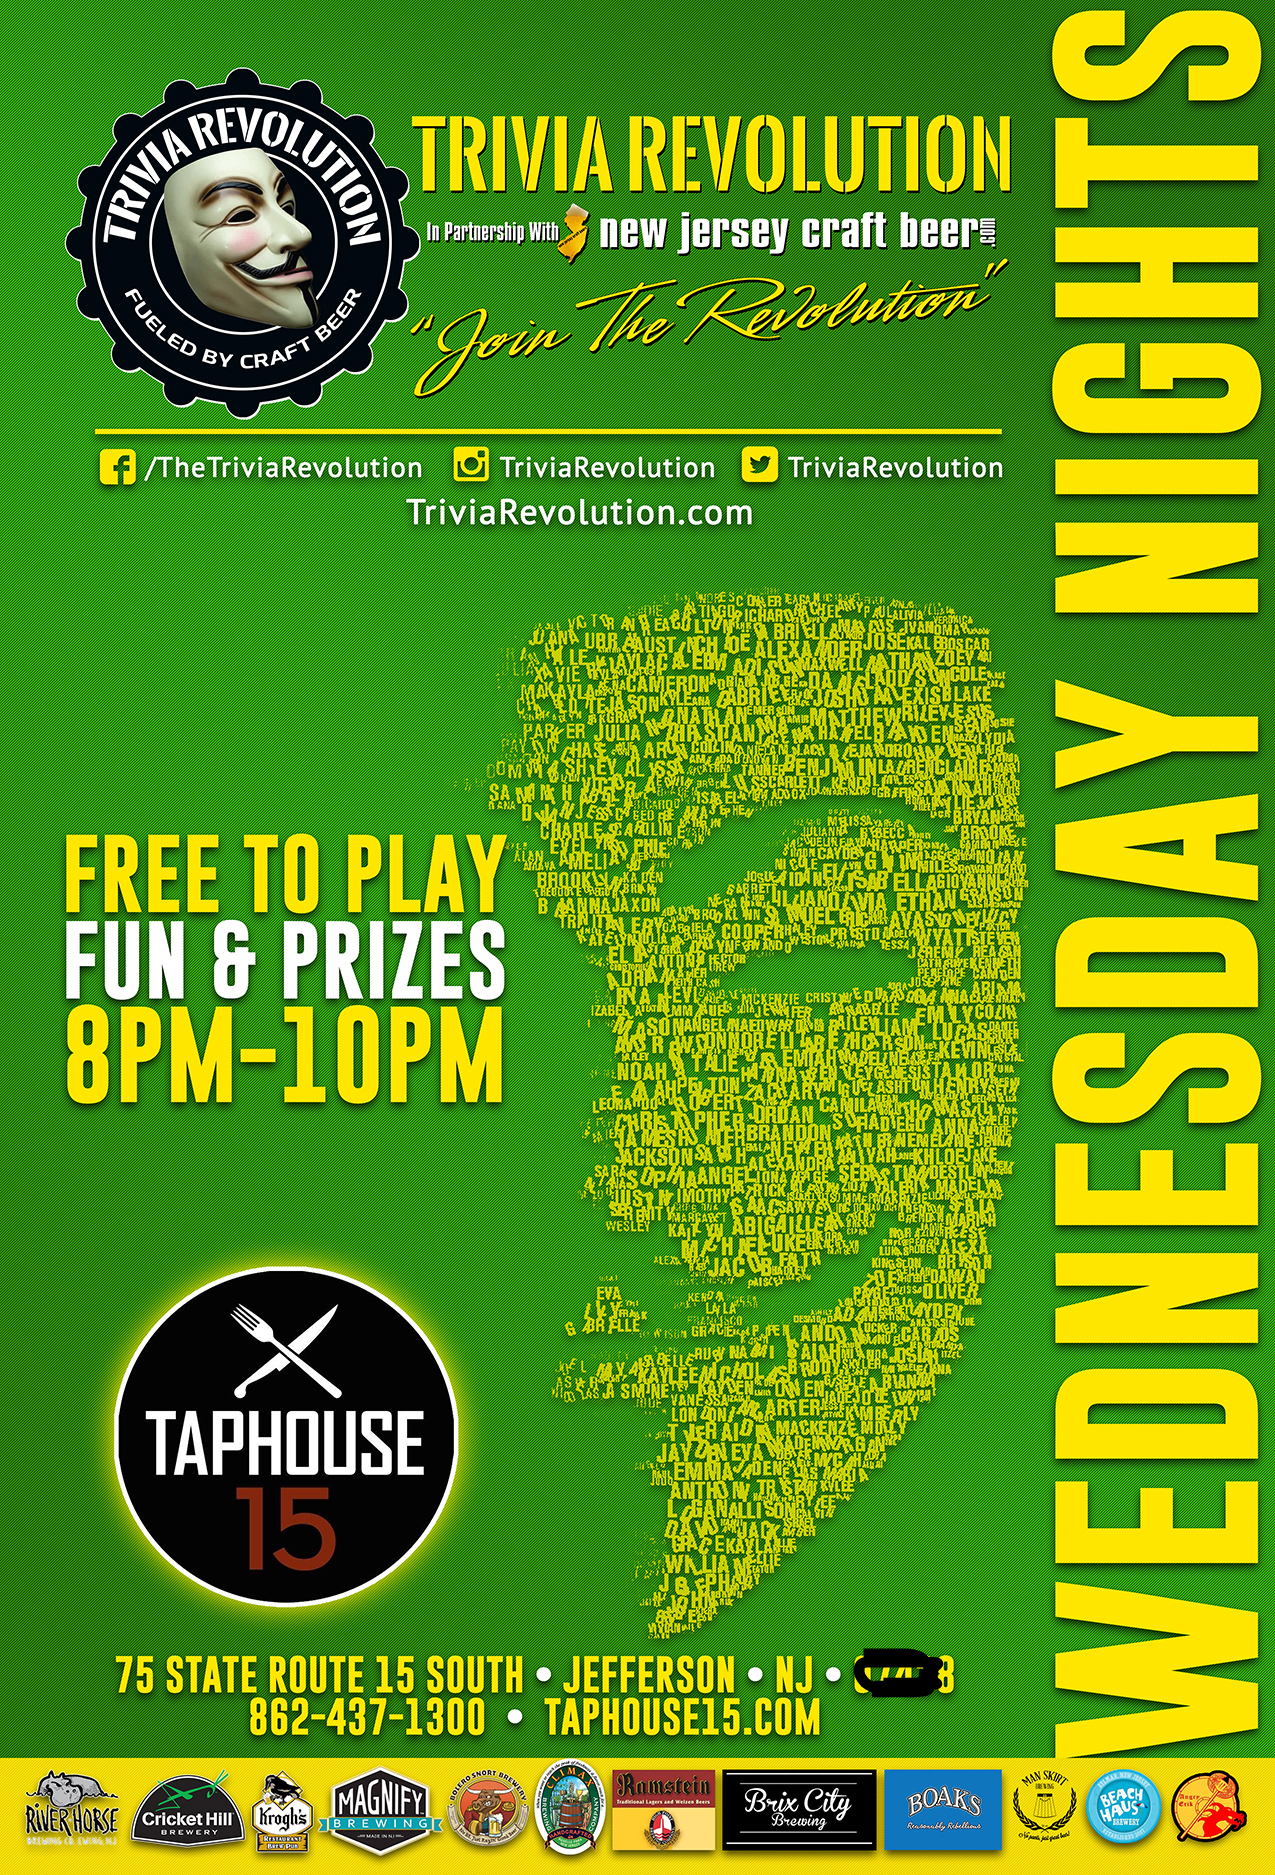 TriviaRevolution_Taphouse15_4x6